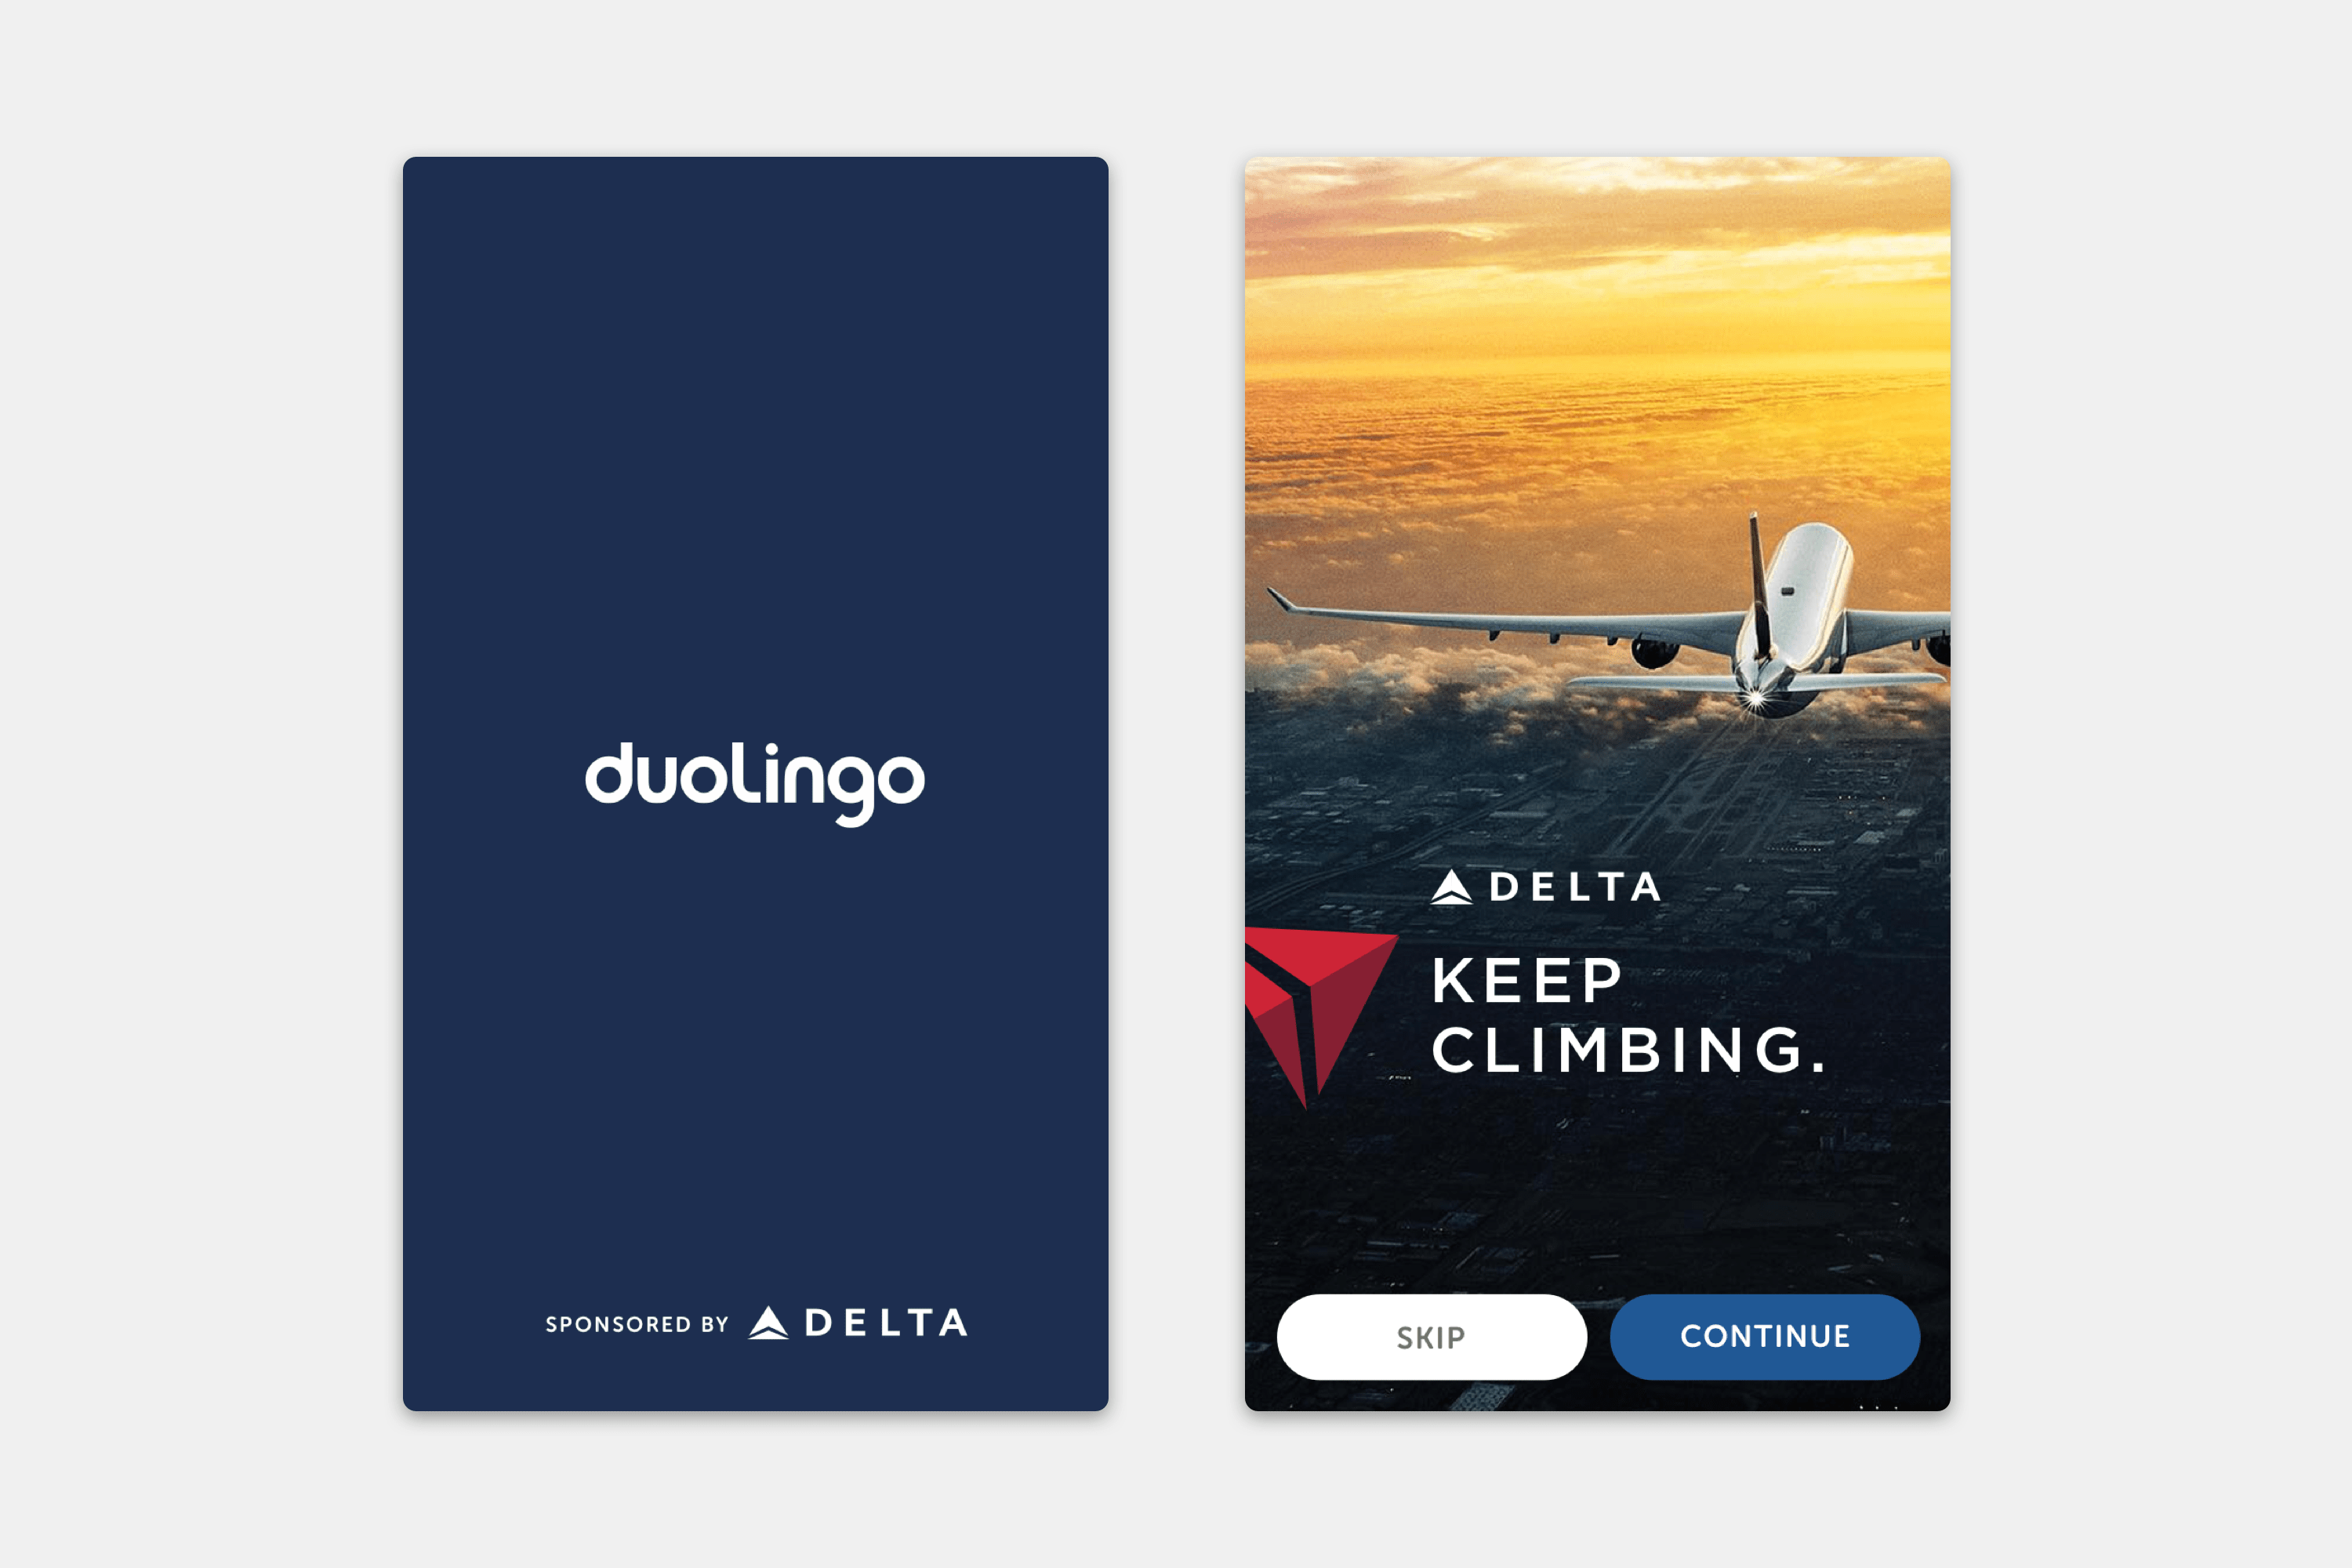 Duolingo Sponsorships - Delta Advertisement